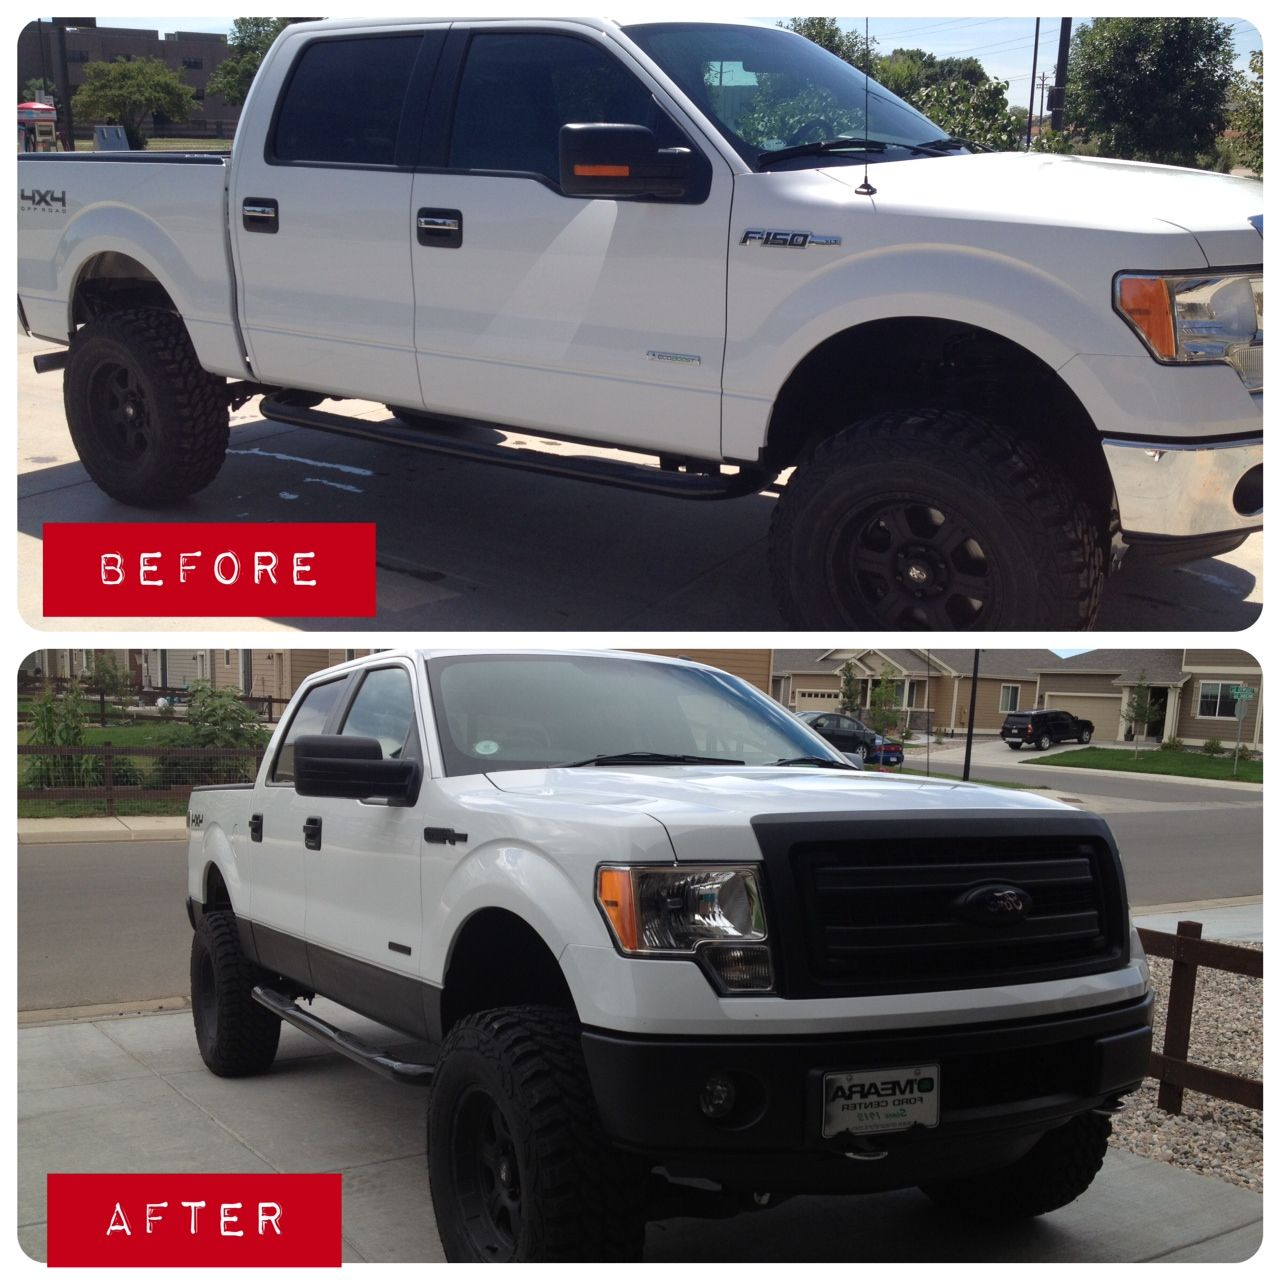 2013 ford f150 lifted wallpaper 2012 ford f150 - White 2005 Ford F150 Lifted